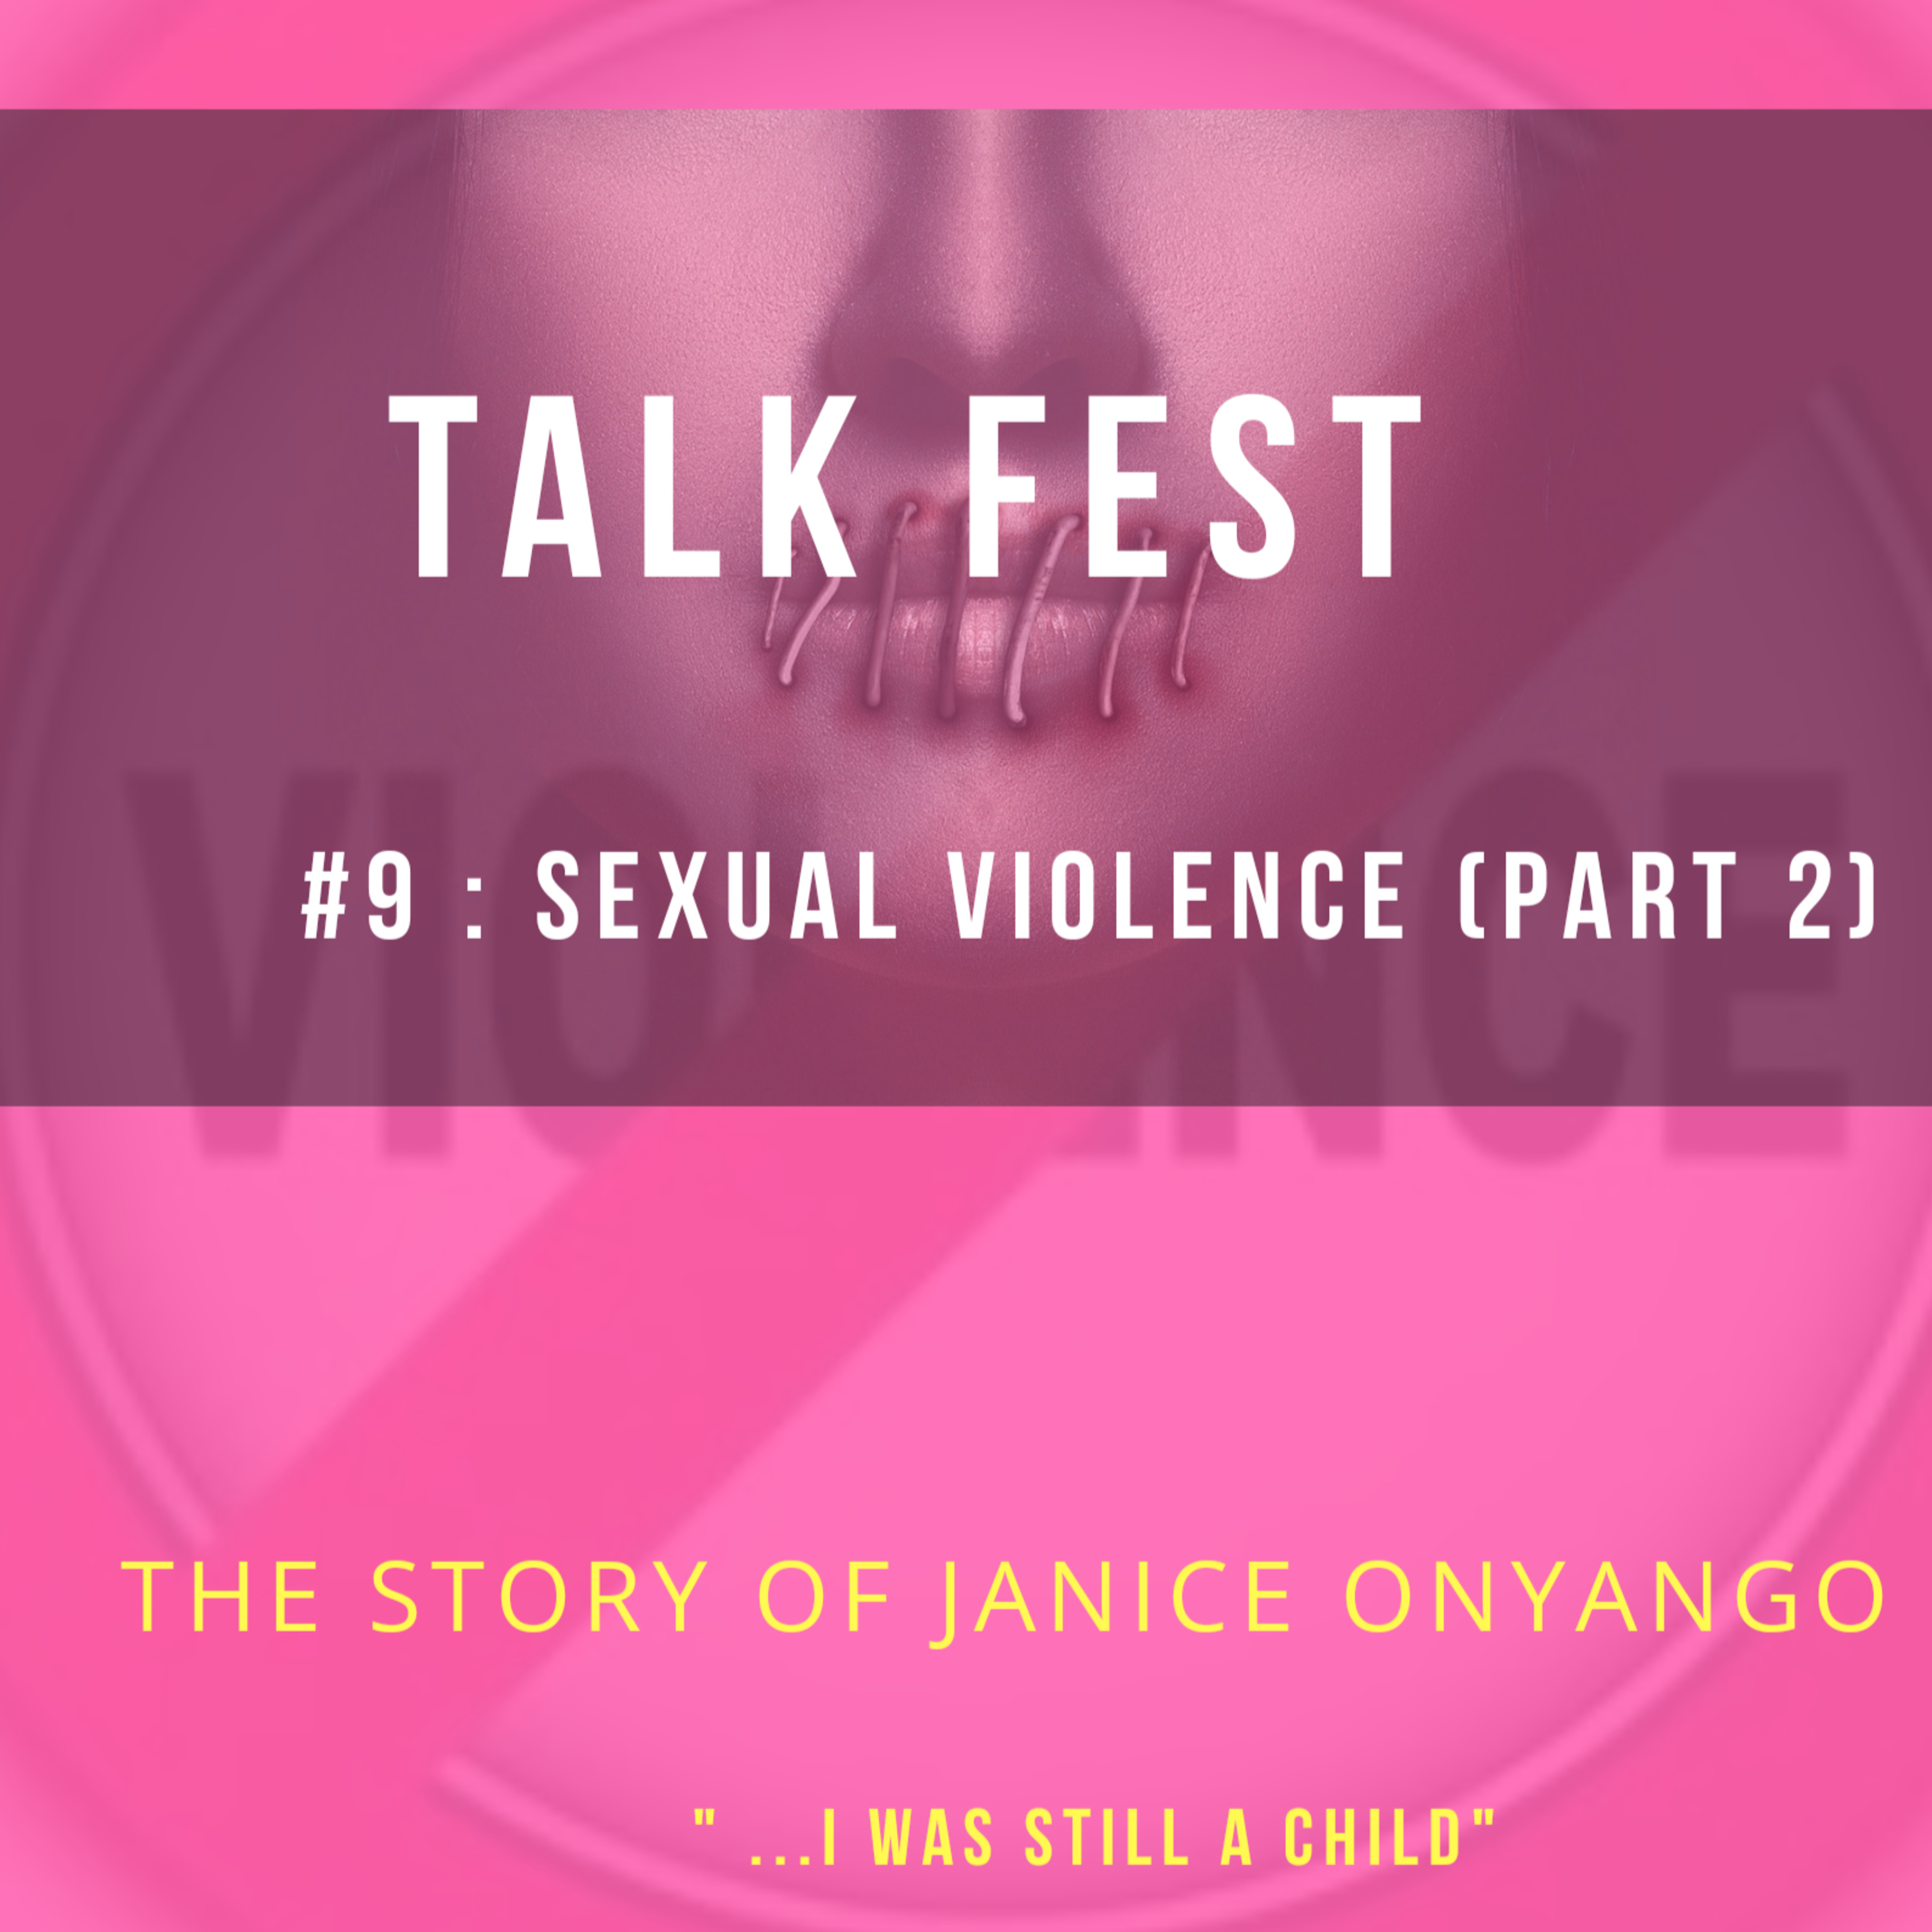 EP 9 - Sexual violence (part 2)